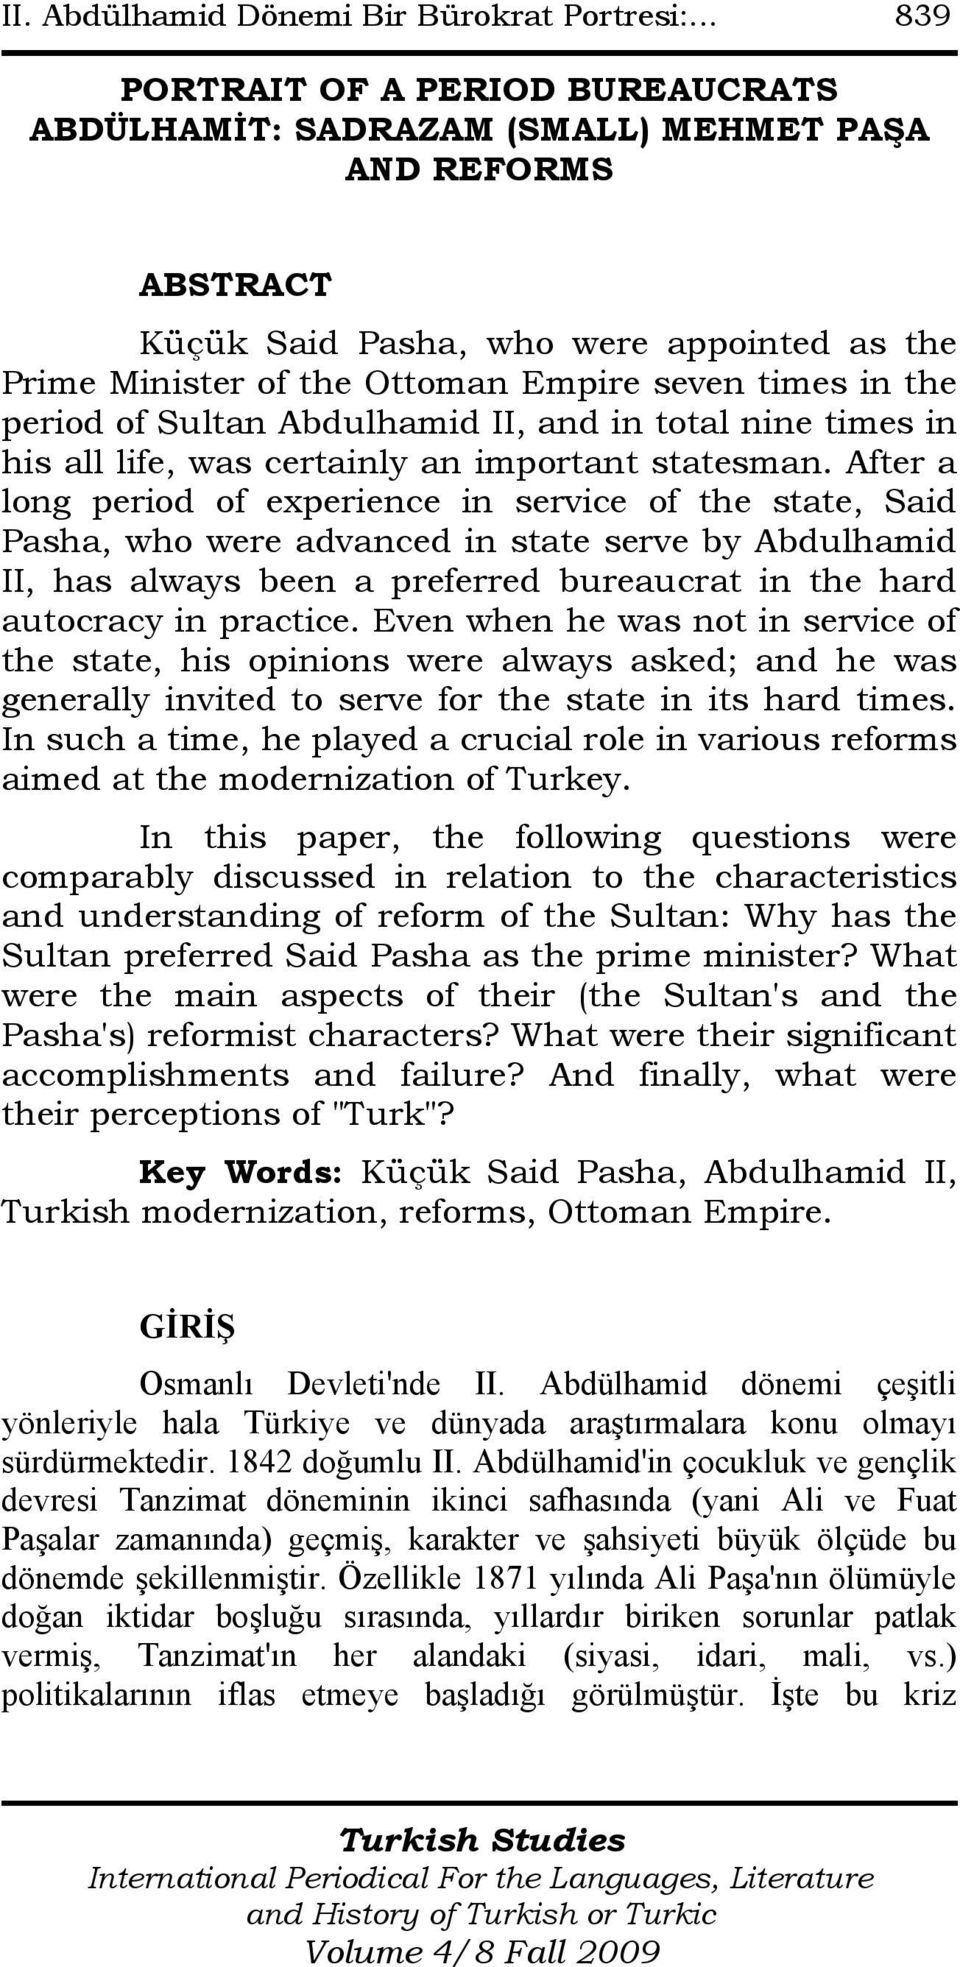 the period of Sultan Abdulhamid II, and in total nine times in his all life, was certainly an important statesman.